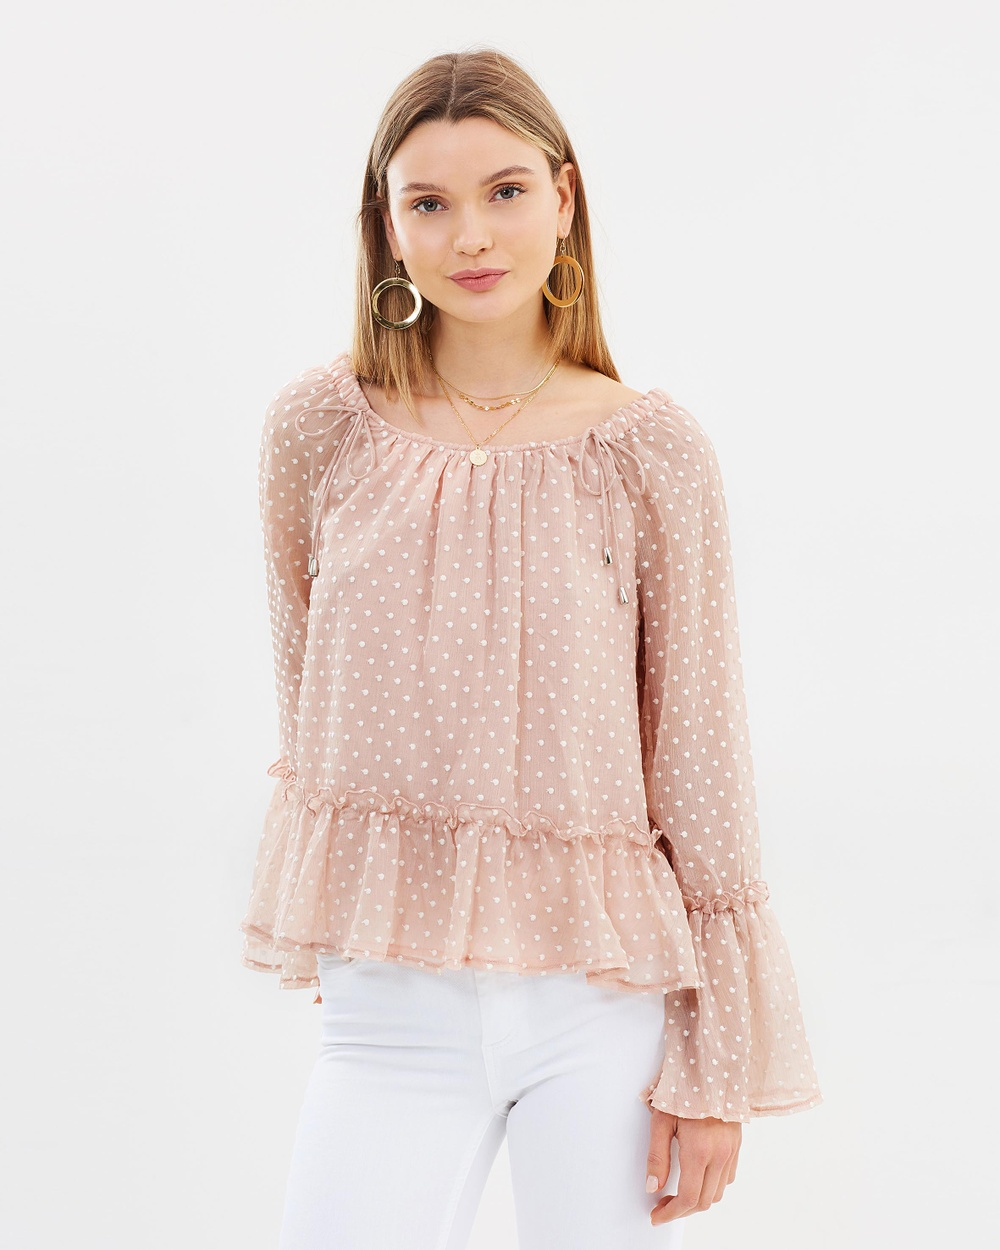 Ministry of Style Eloise Long Sleeve Top Tops Powder Pink Eloise Long Sleeve Top